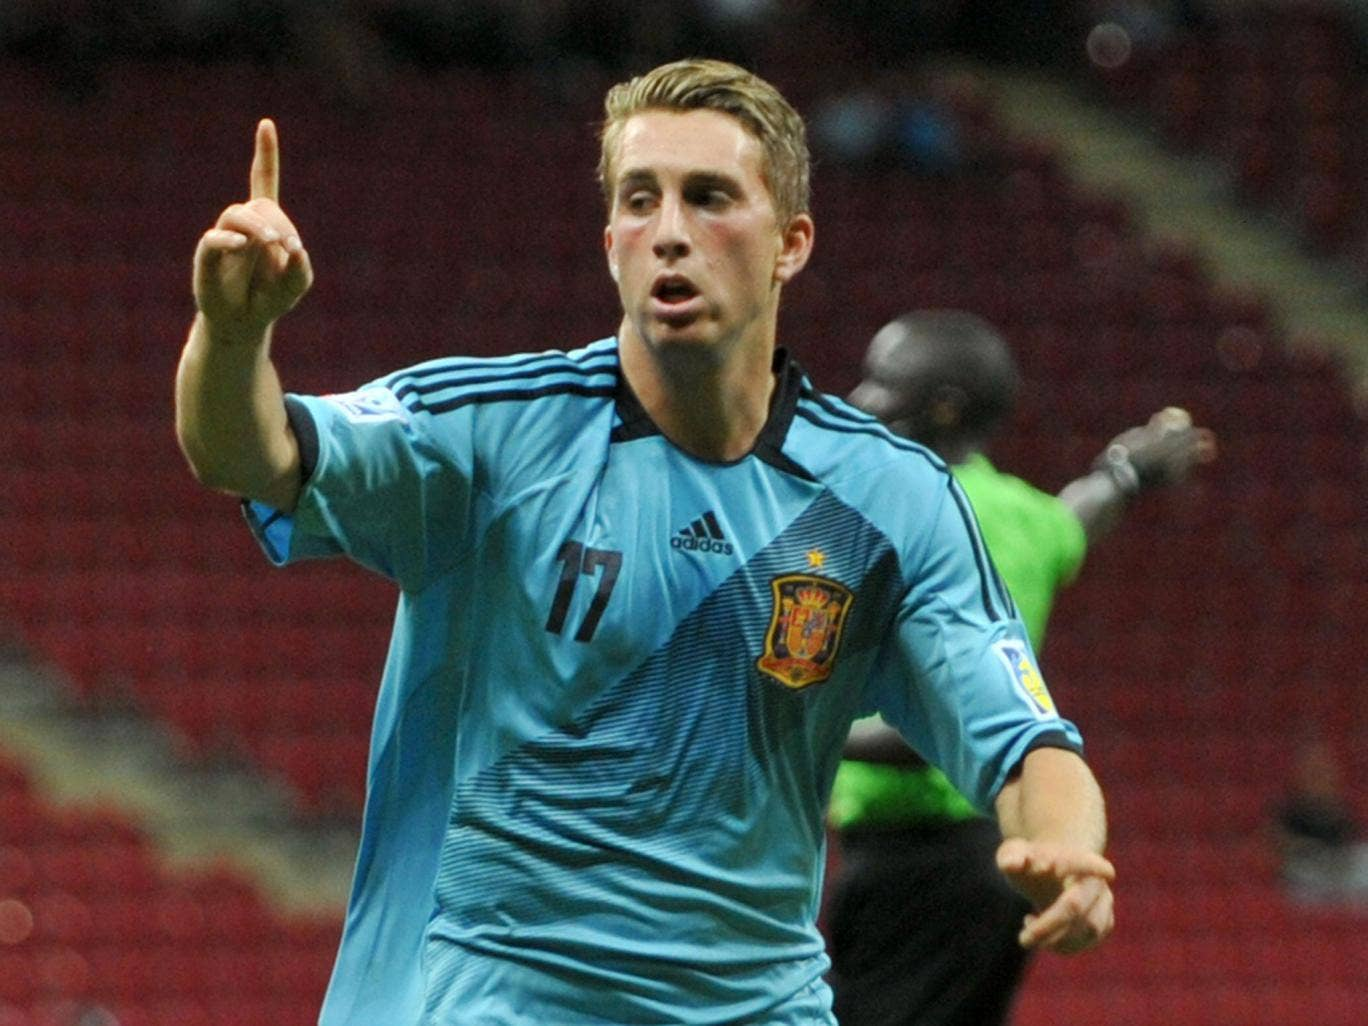 Gerard Deulofeu shone for Spain Under-21s and has been likened to a young Cristiano Ronaldo